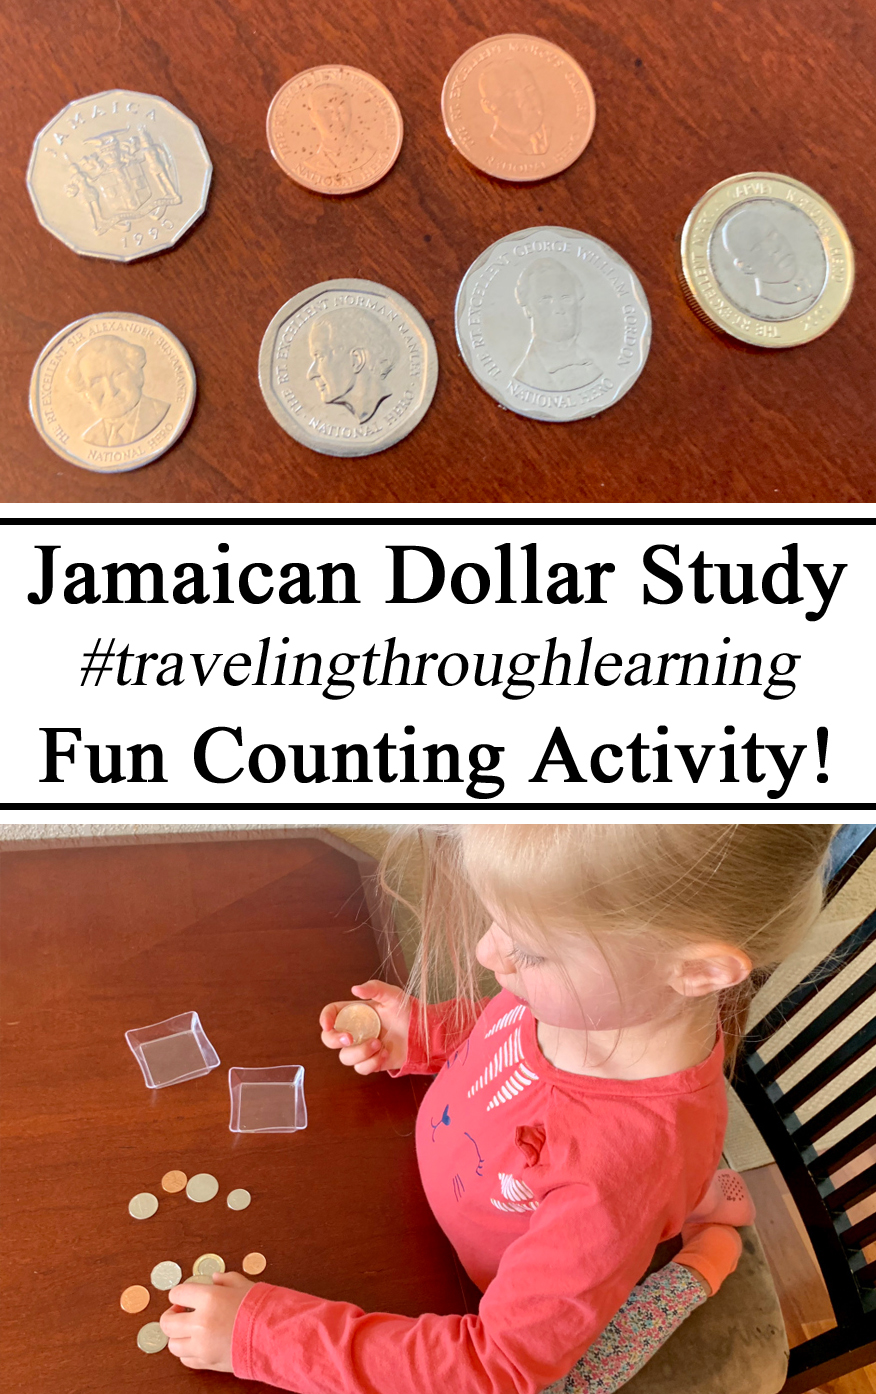 Jamaican Unit, Carribean, Currencies, Money, Dollar, J$, Coins, Collection, Counting, Learn, Learning, Montessori, Inspired, Ideas, Educational, Education, Preschool, Kindergarten, PreK, Homeschool, Homeschooling, Hands on Learning, #travelingthroughlearning, Learning, Unit Study, Studies